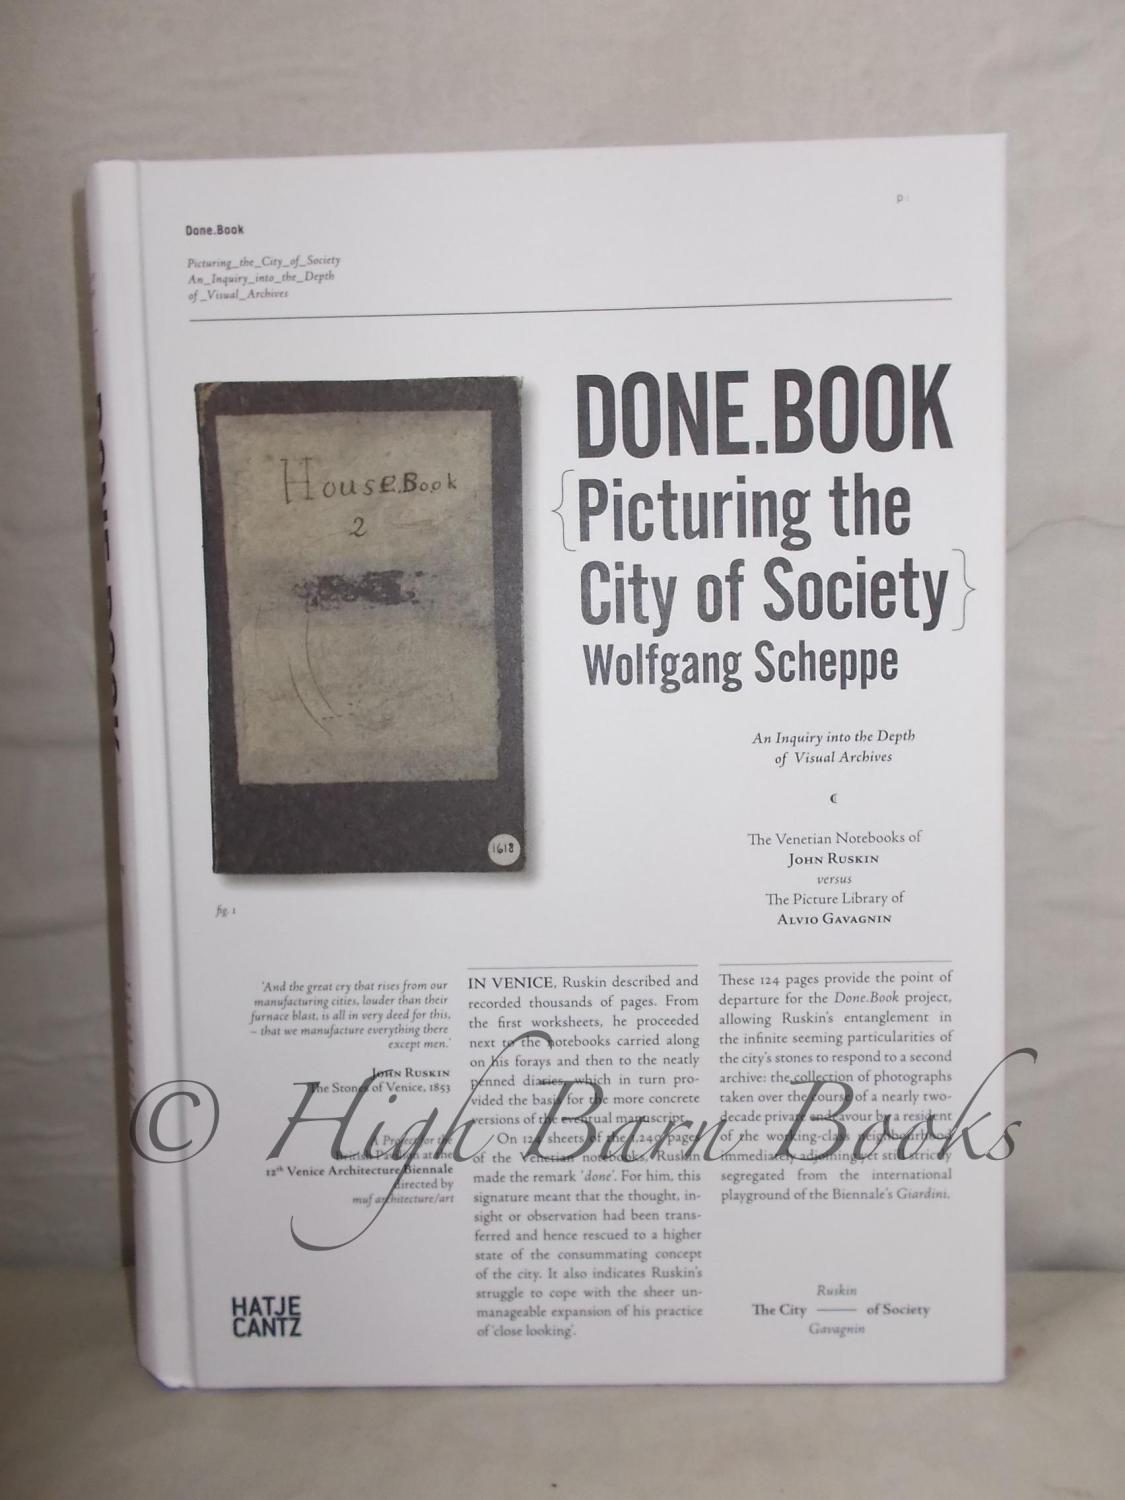 Done.Book: Picturing the City of Society an Inquiry into the Depth of Visual Archives the Venetian Notebooks of John Ruskin Versus the Picture Library of Alvio Gavagnin - Scheppe, Wolfgang